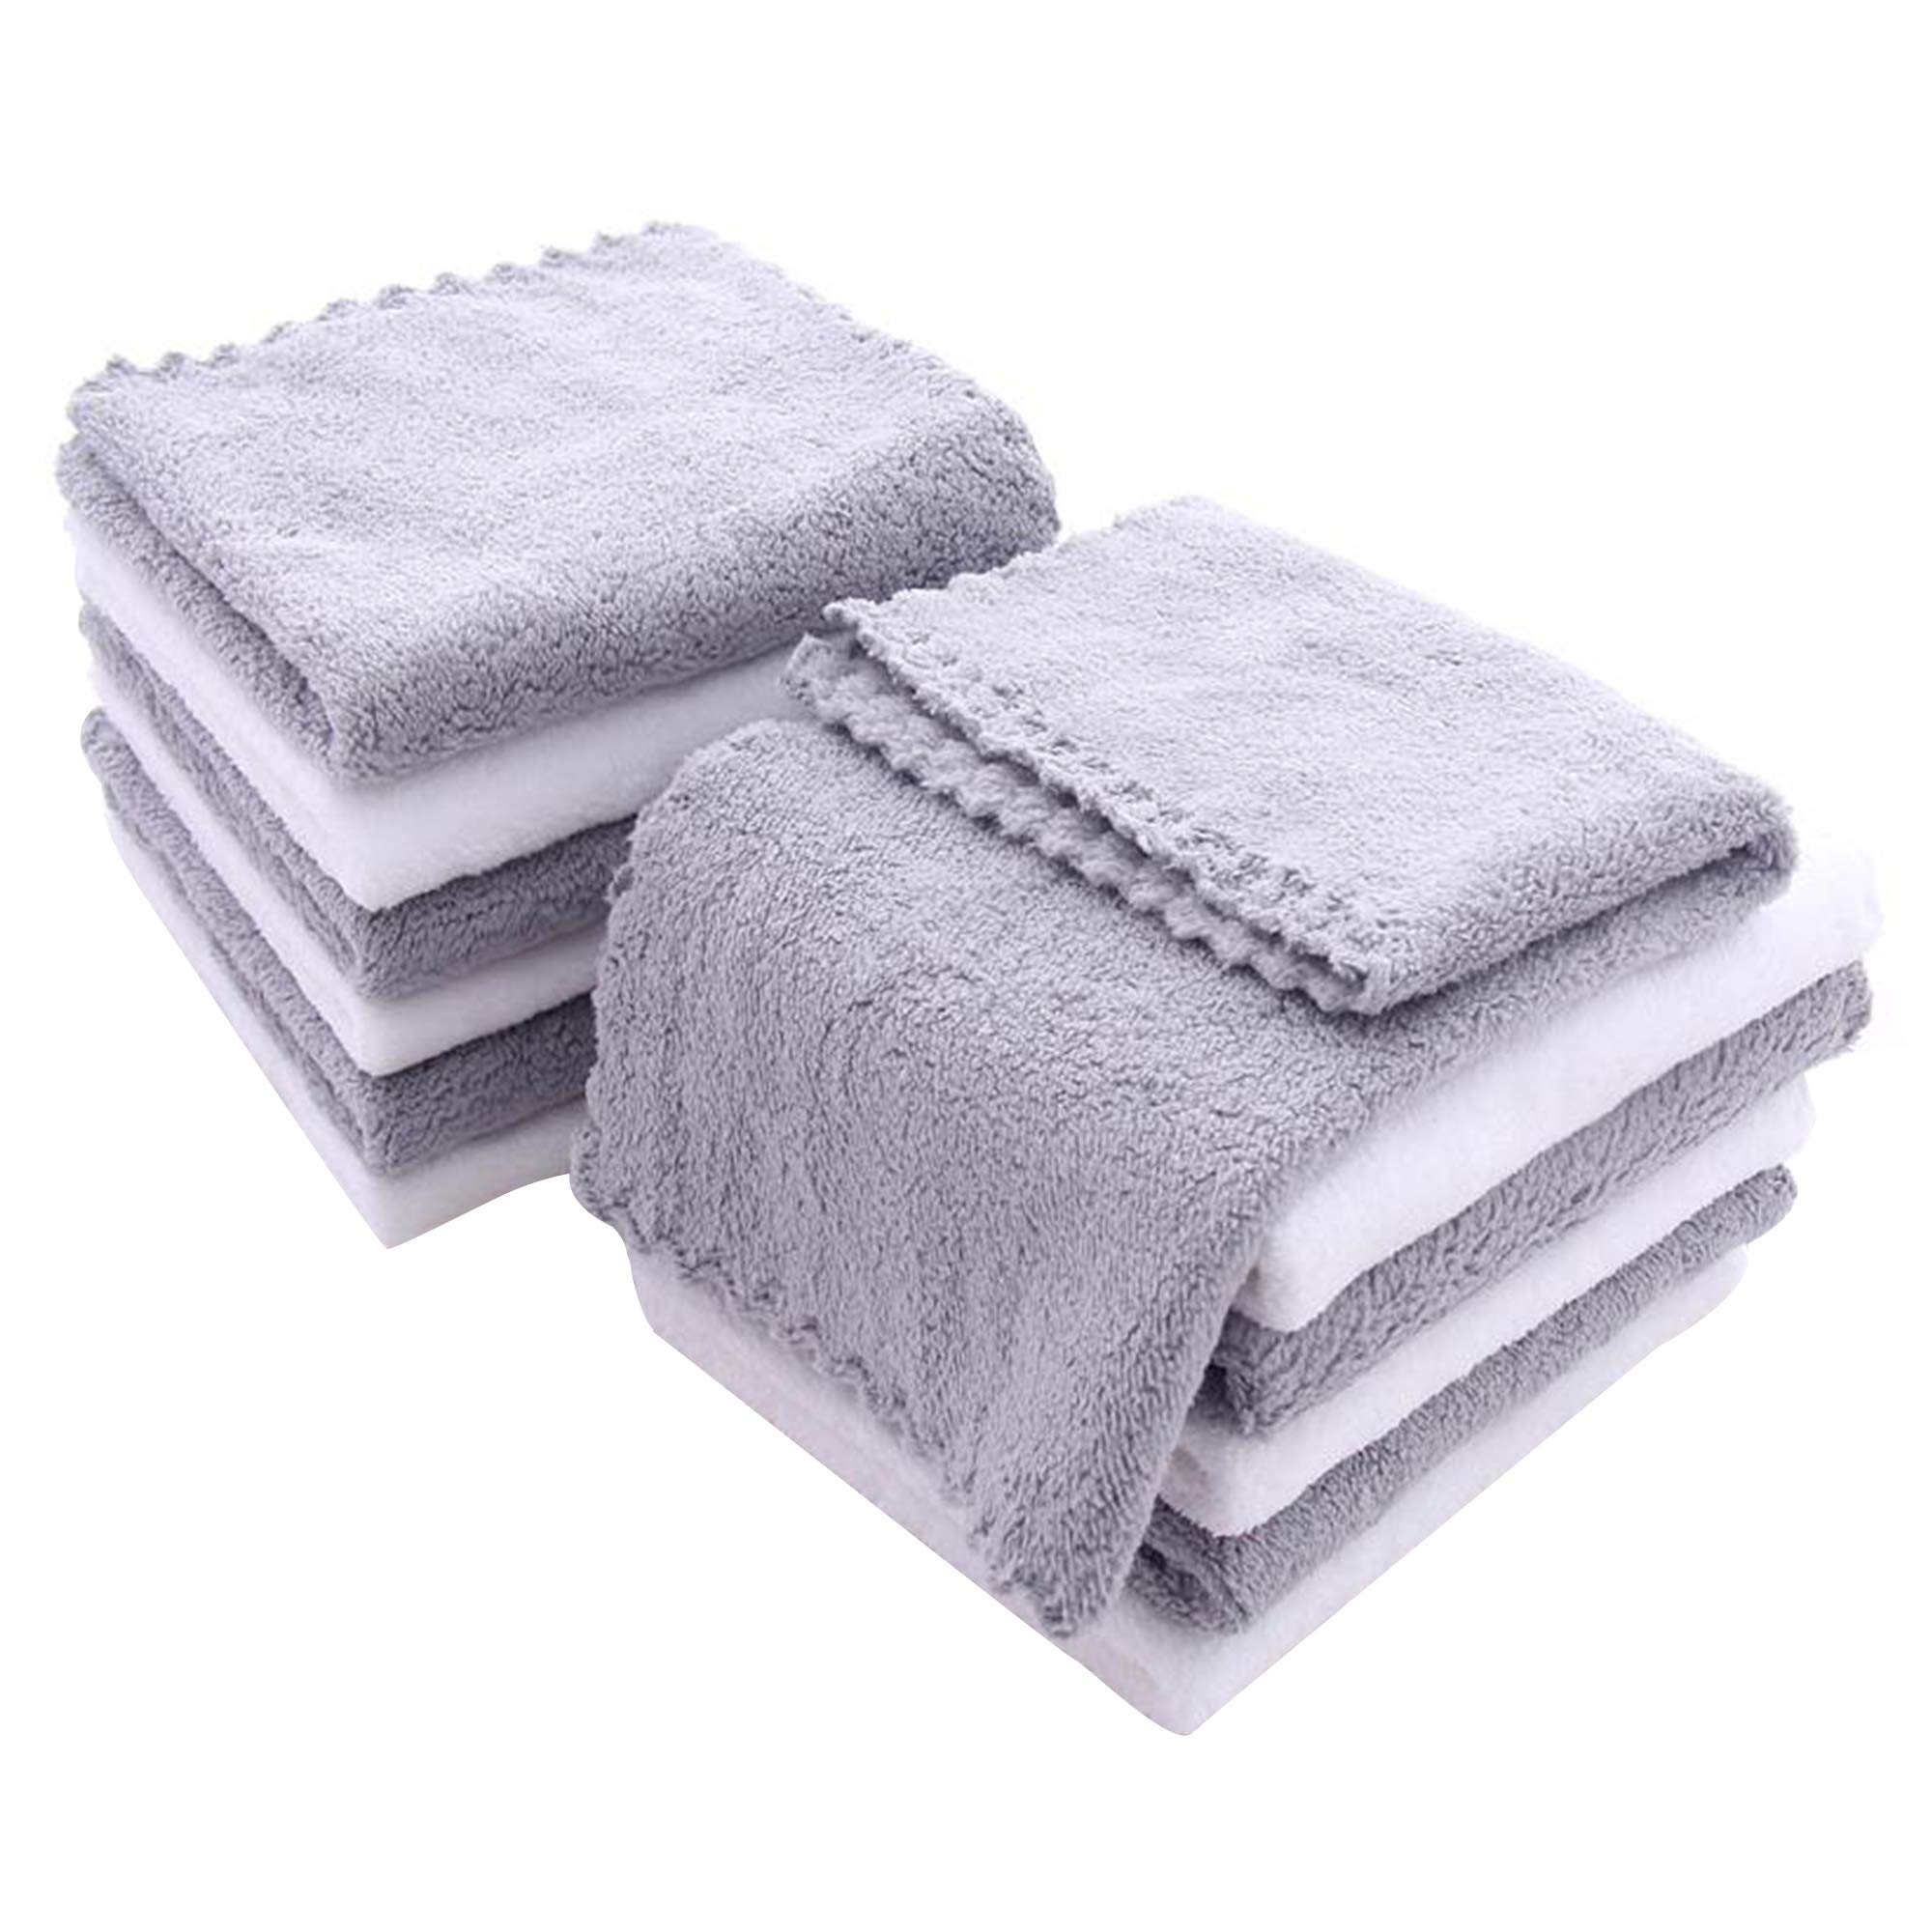 12 Pack Baby Washcloths – Extra Absorbent and Soft Wash Clothes for